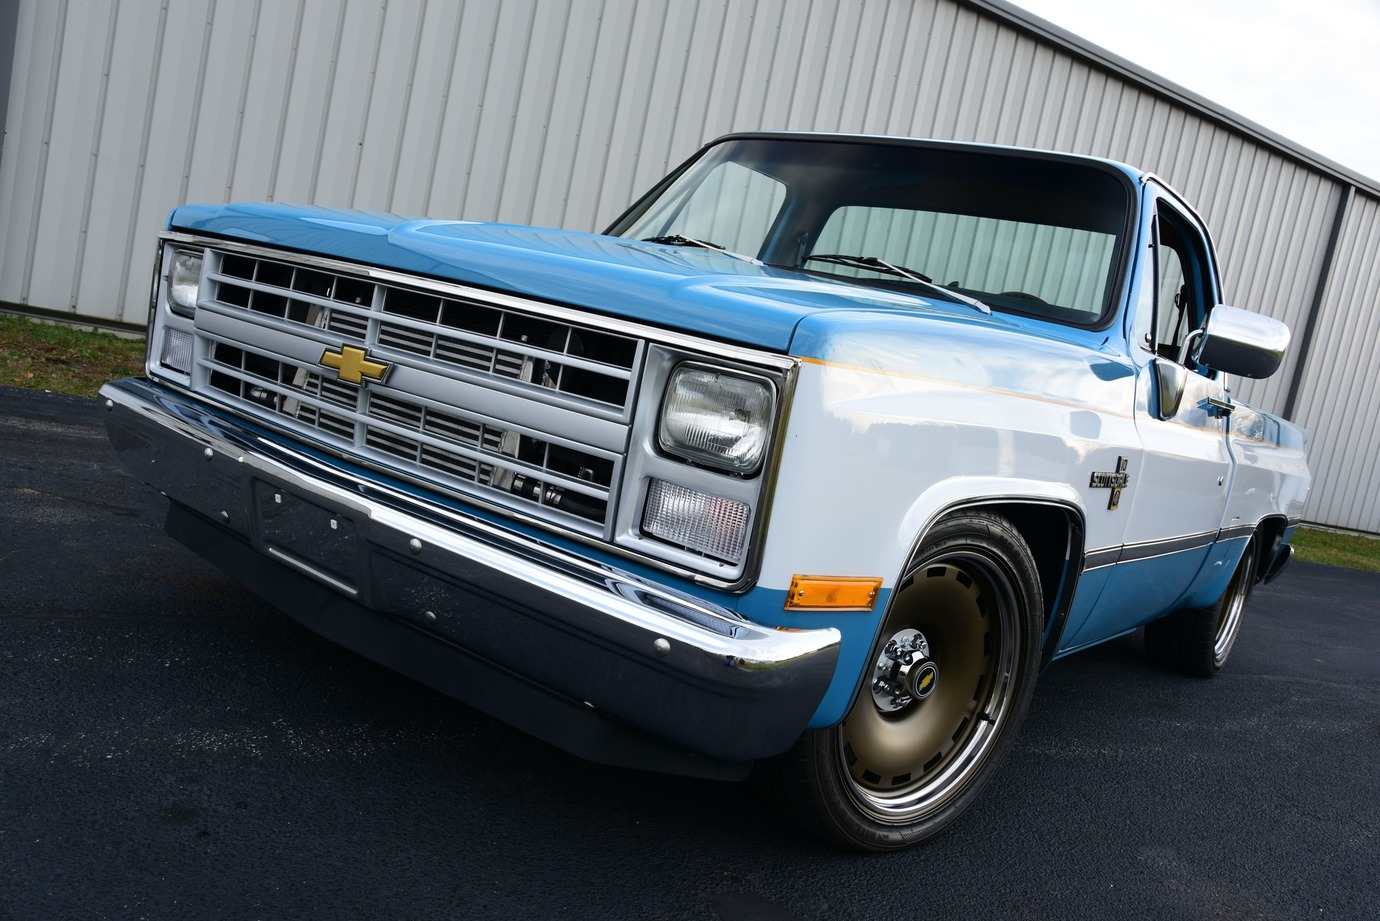 002-1983-chevrolet-c10-scottsdale-pickup-cerce